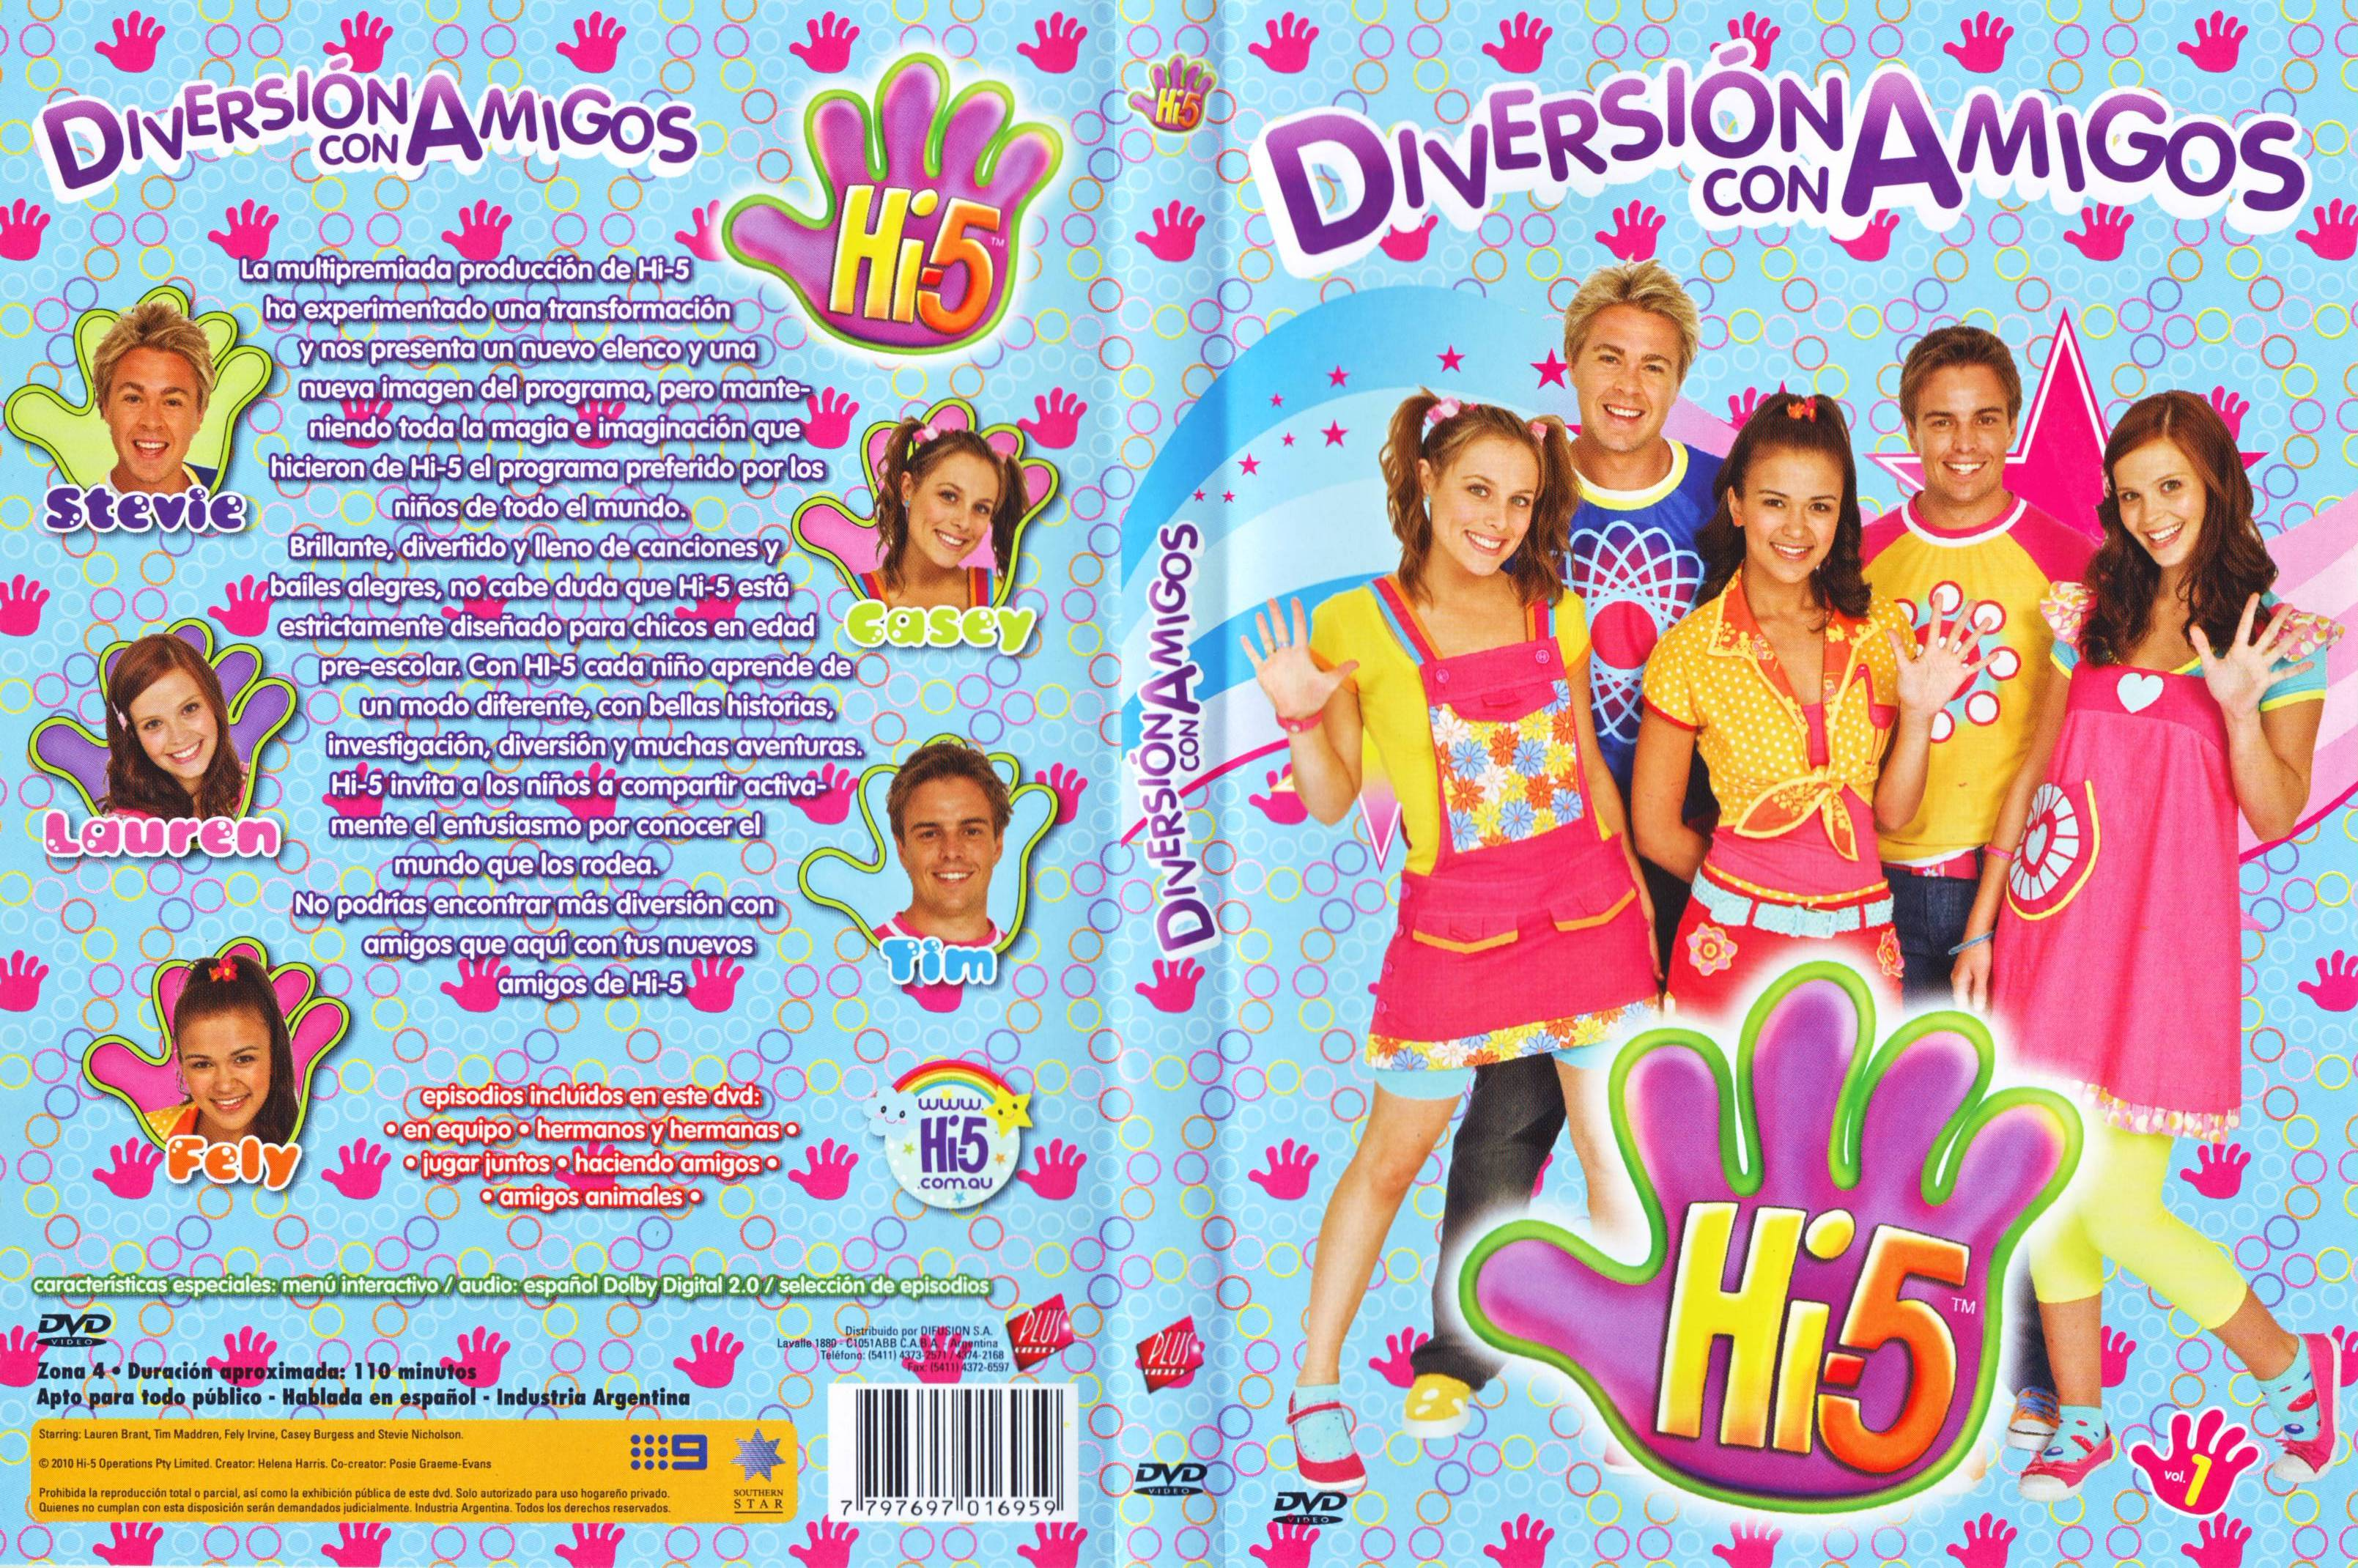 Hi-5 Diversion Con Amigos Dvd Elenco De Australia Original (DVDs) a ...